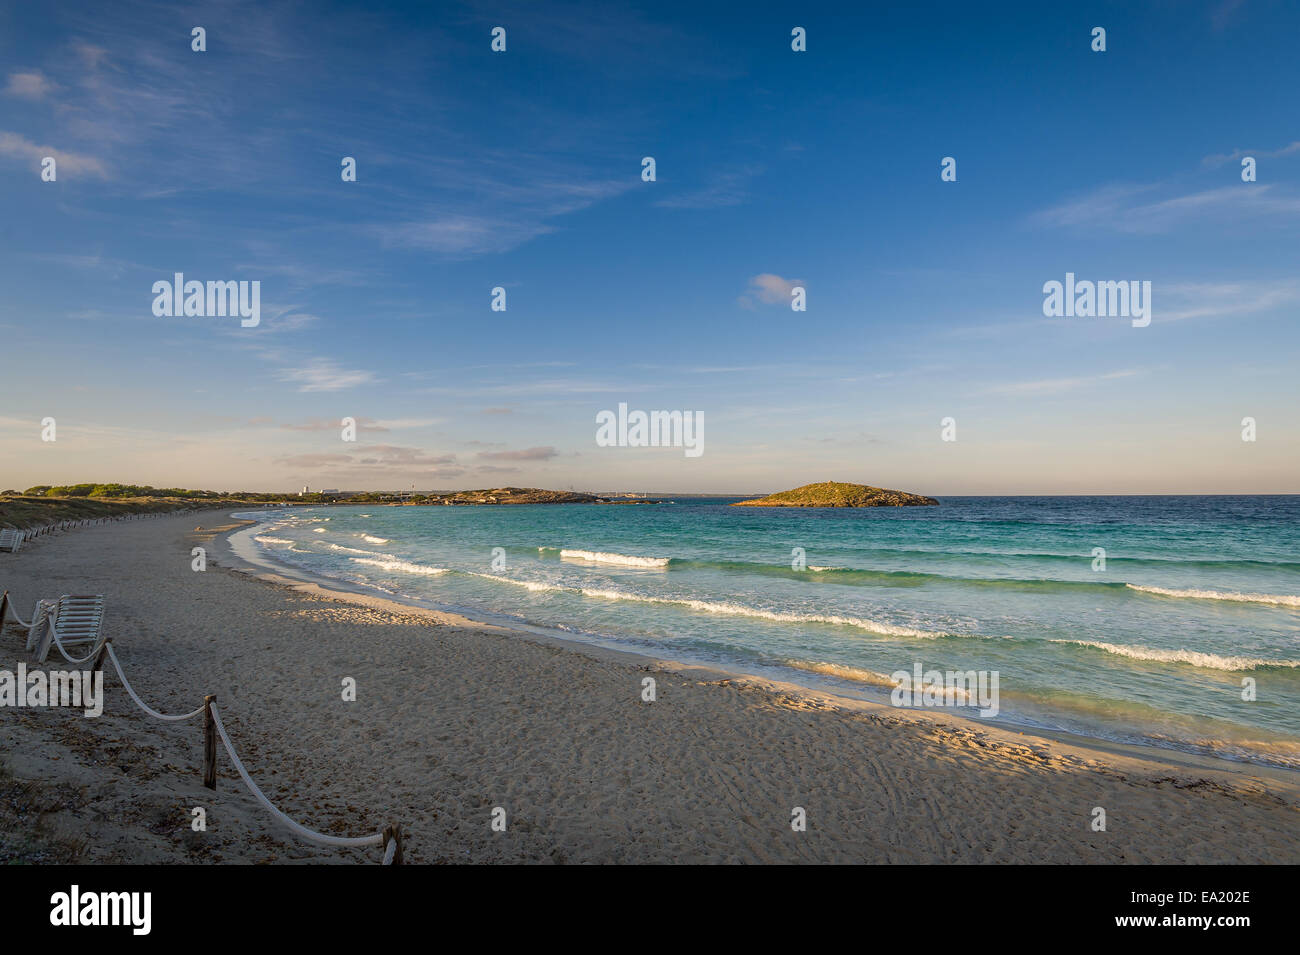 Windy morning at beach - Stock Image